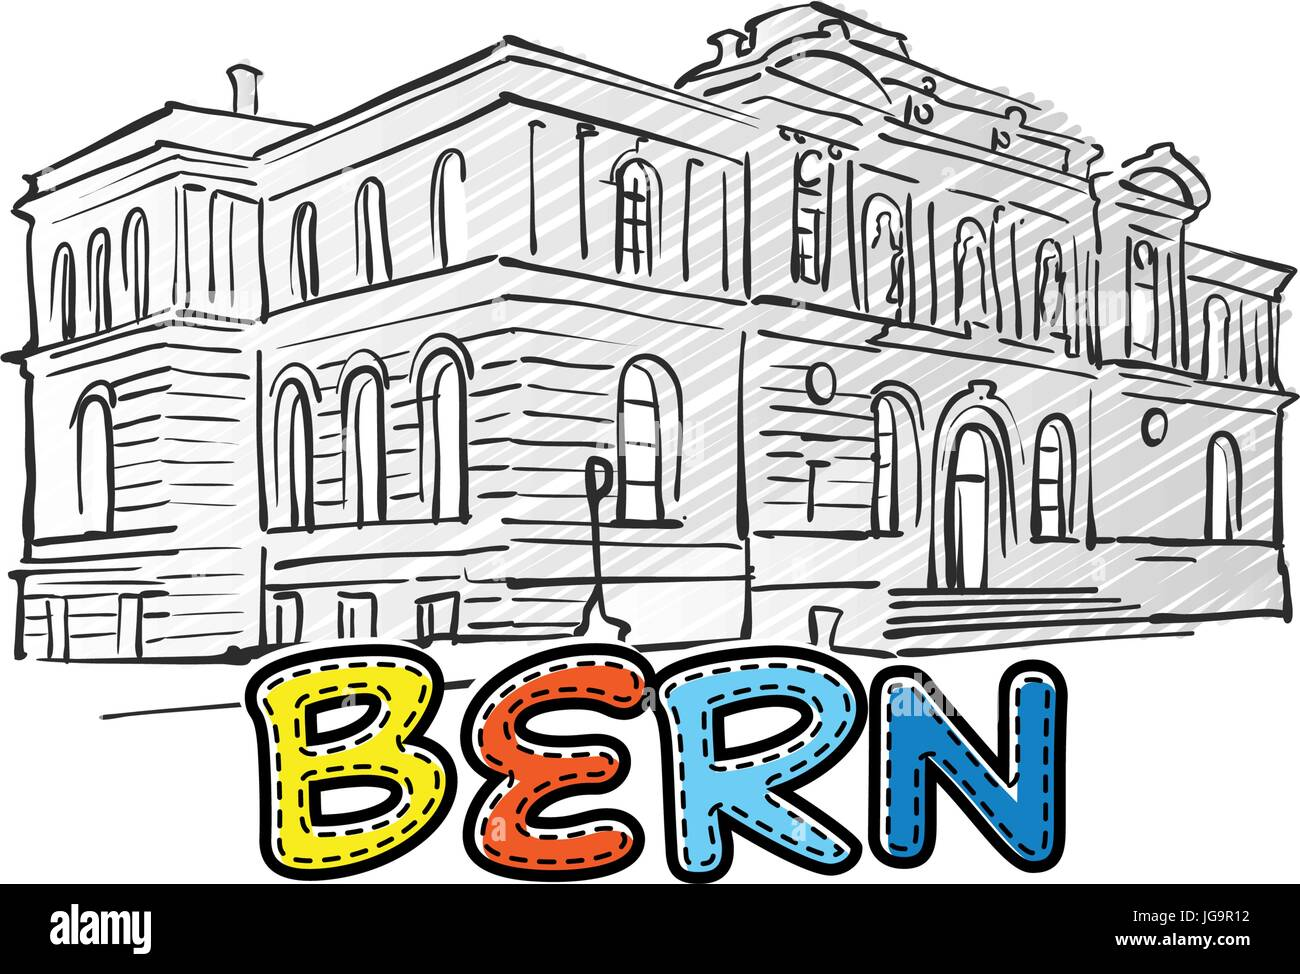 Bern beautiful sketched icon, famaous hand-drawn landmark, city name lettering, vector illustration - Stock Vector